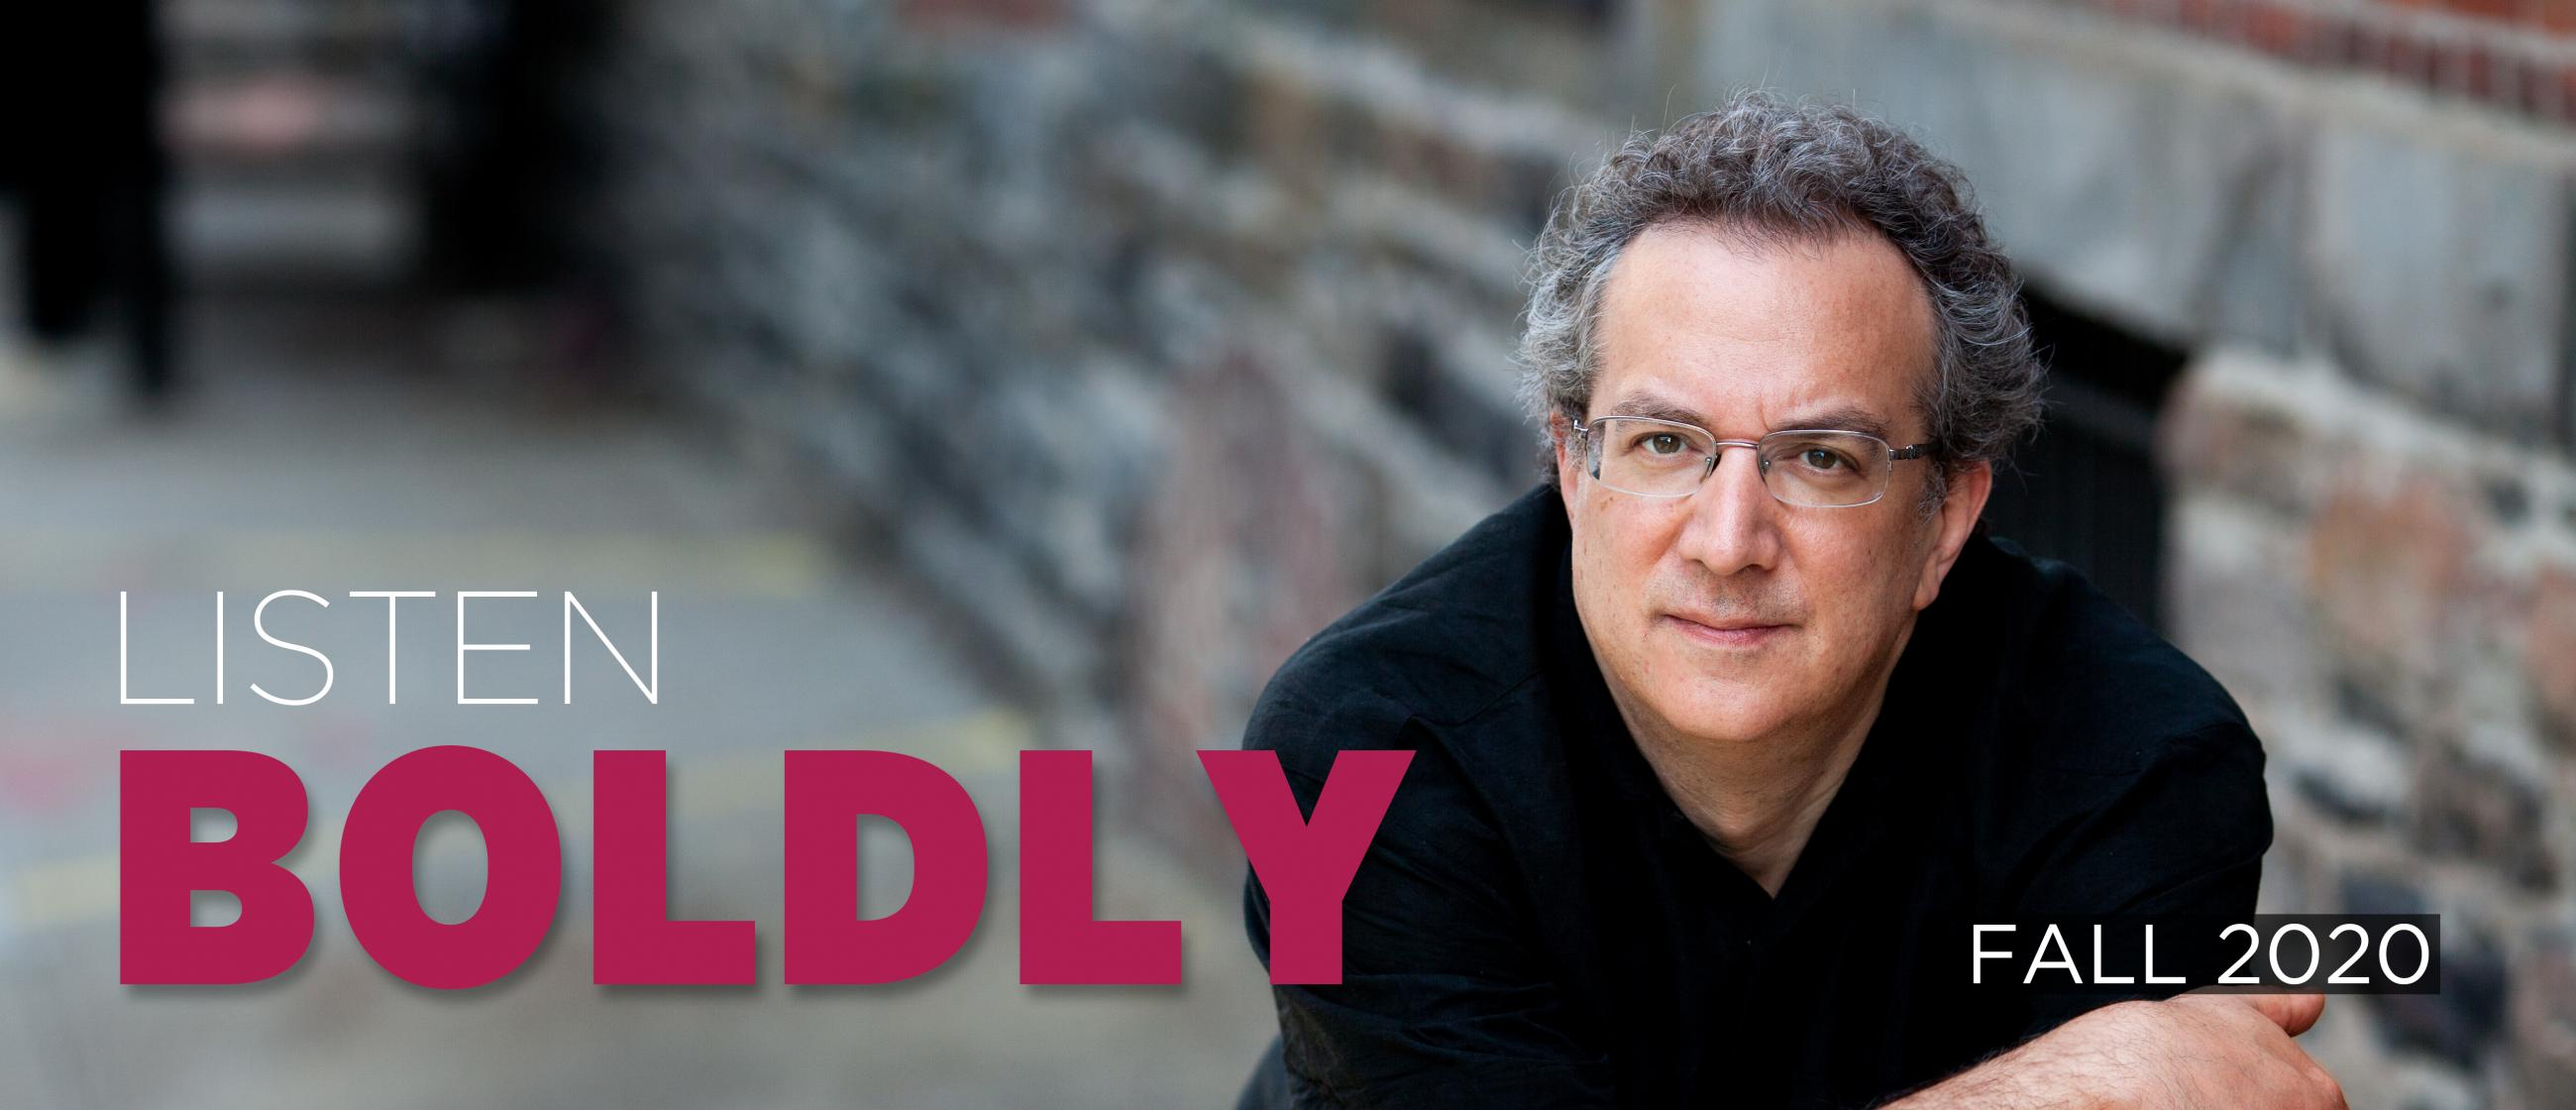 """Image of pianist and composer Uri Caine with text """"Listen Boldly"""" and """"Fall 2020"""""""